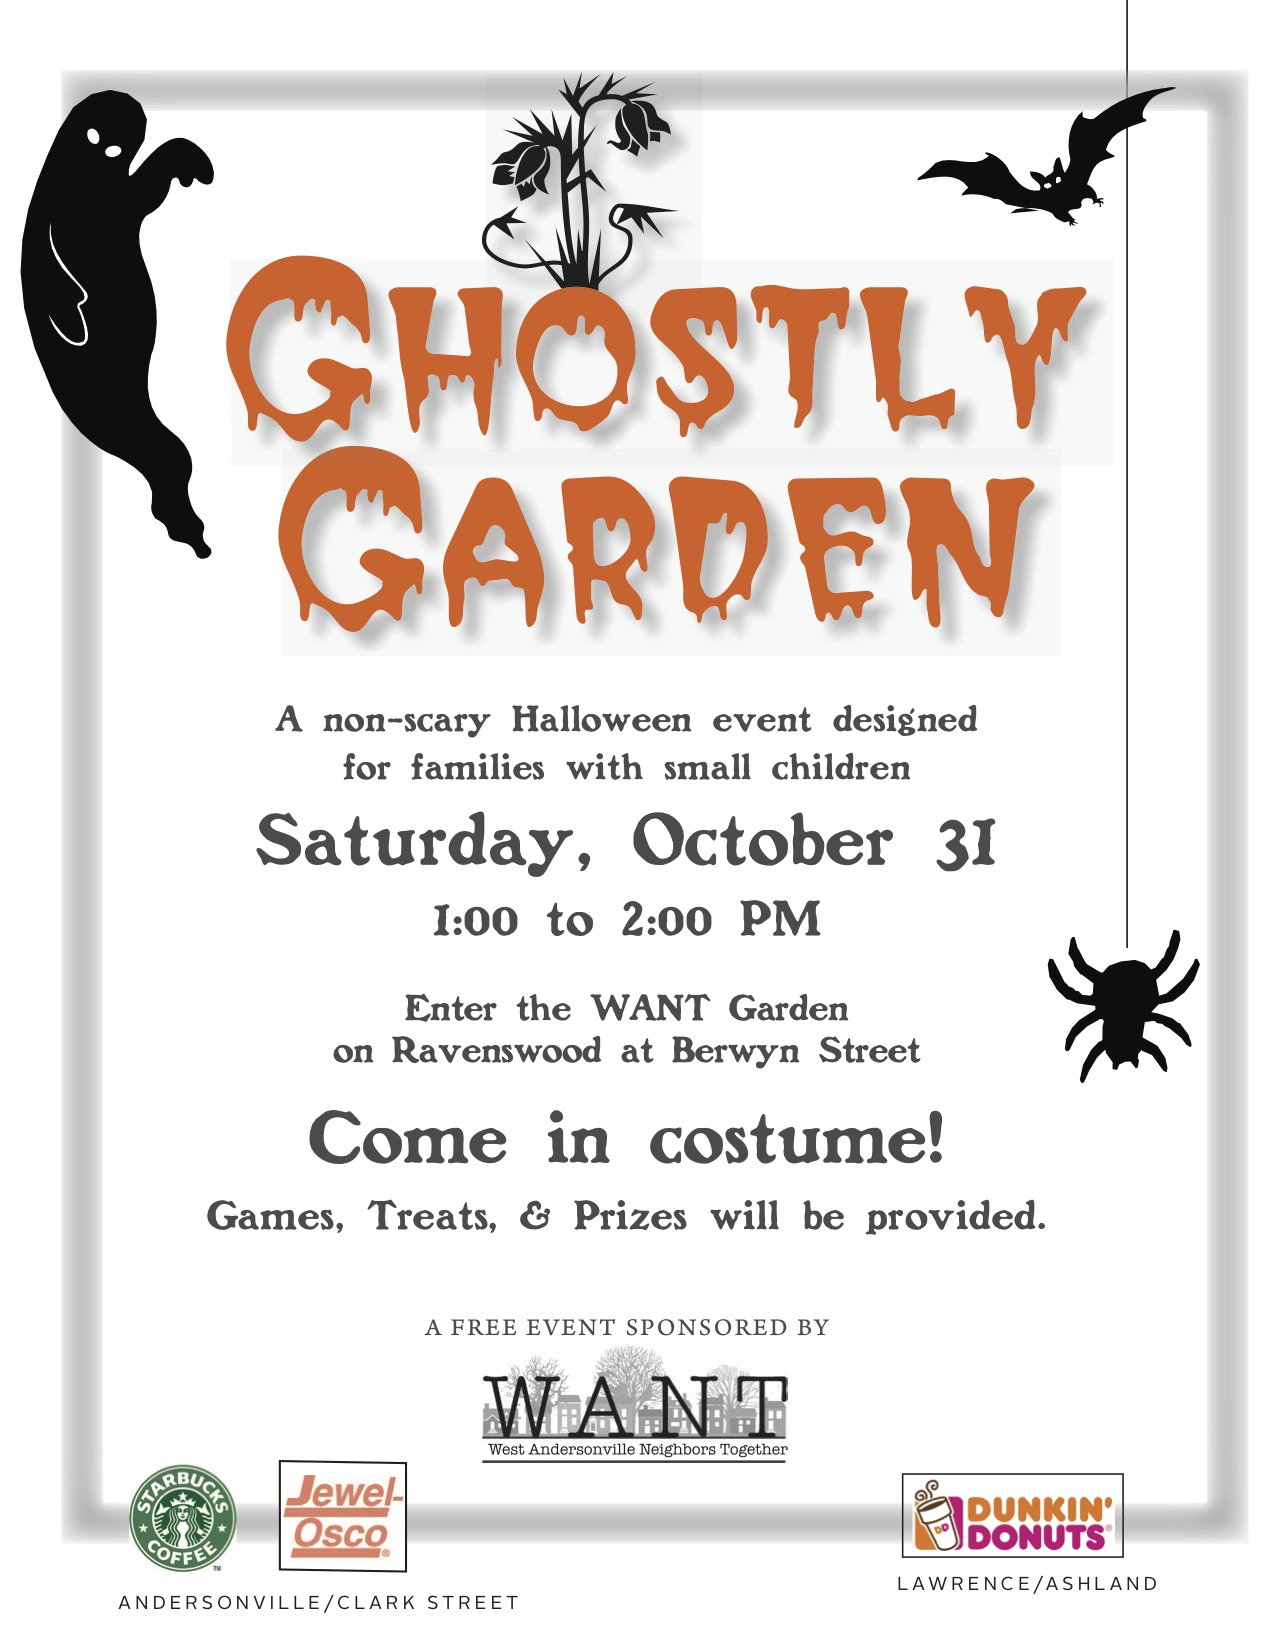 Ghostly Garden Flyer outlines